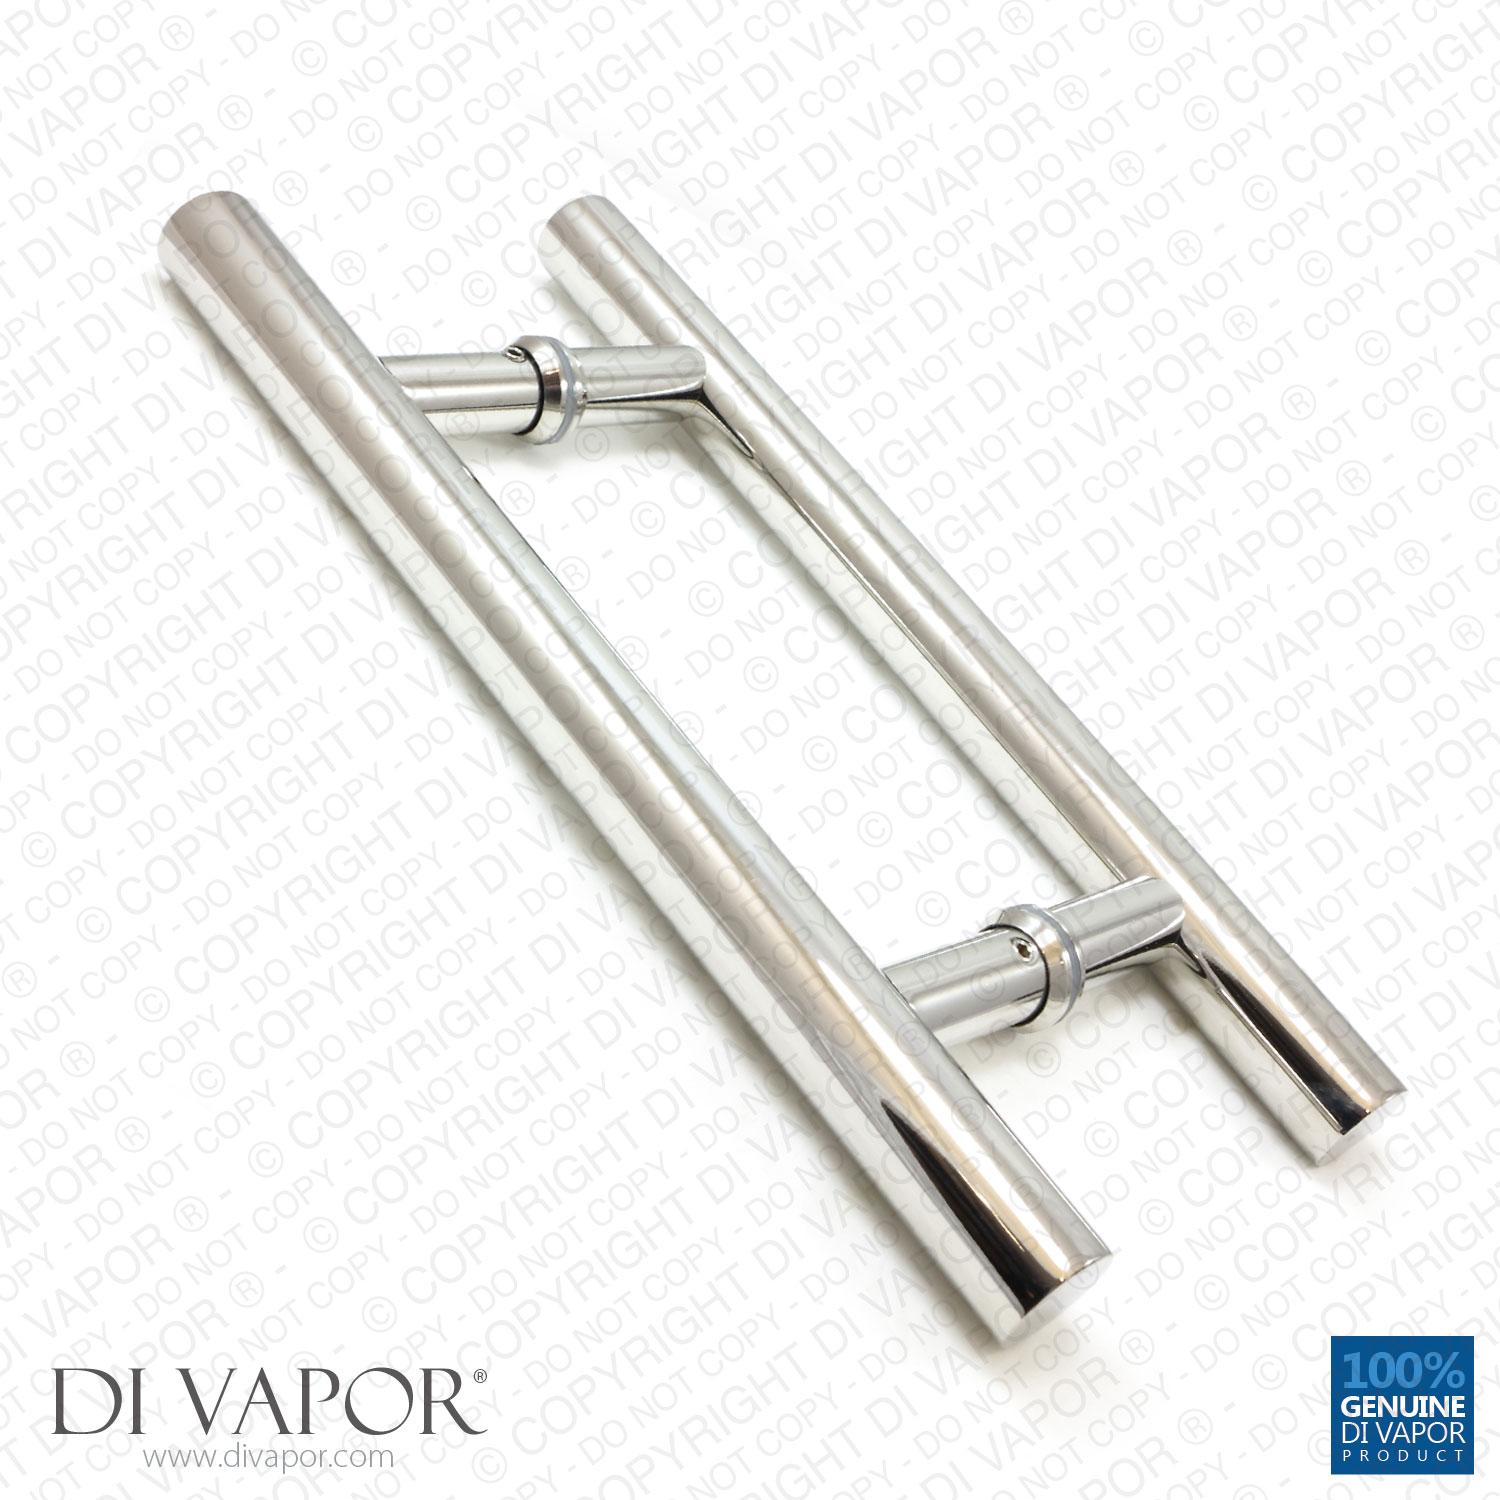 Di Vapor R 180mm Stainless Steel Shower Door Handles